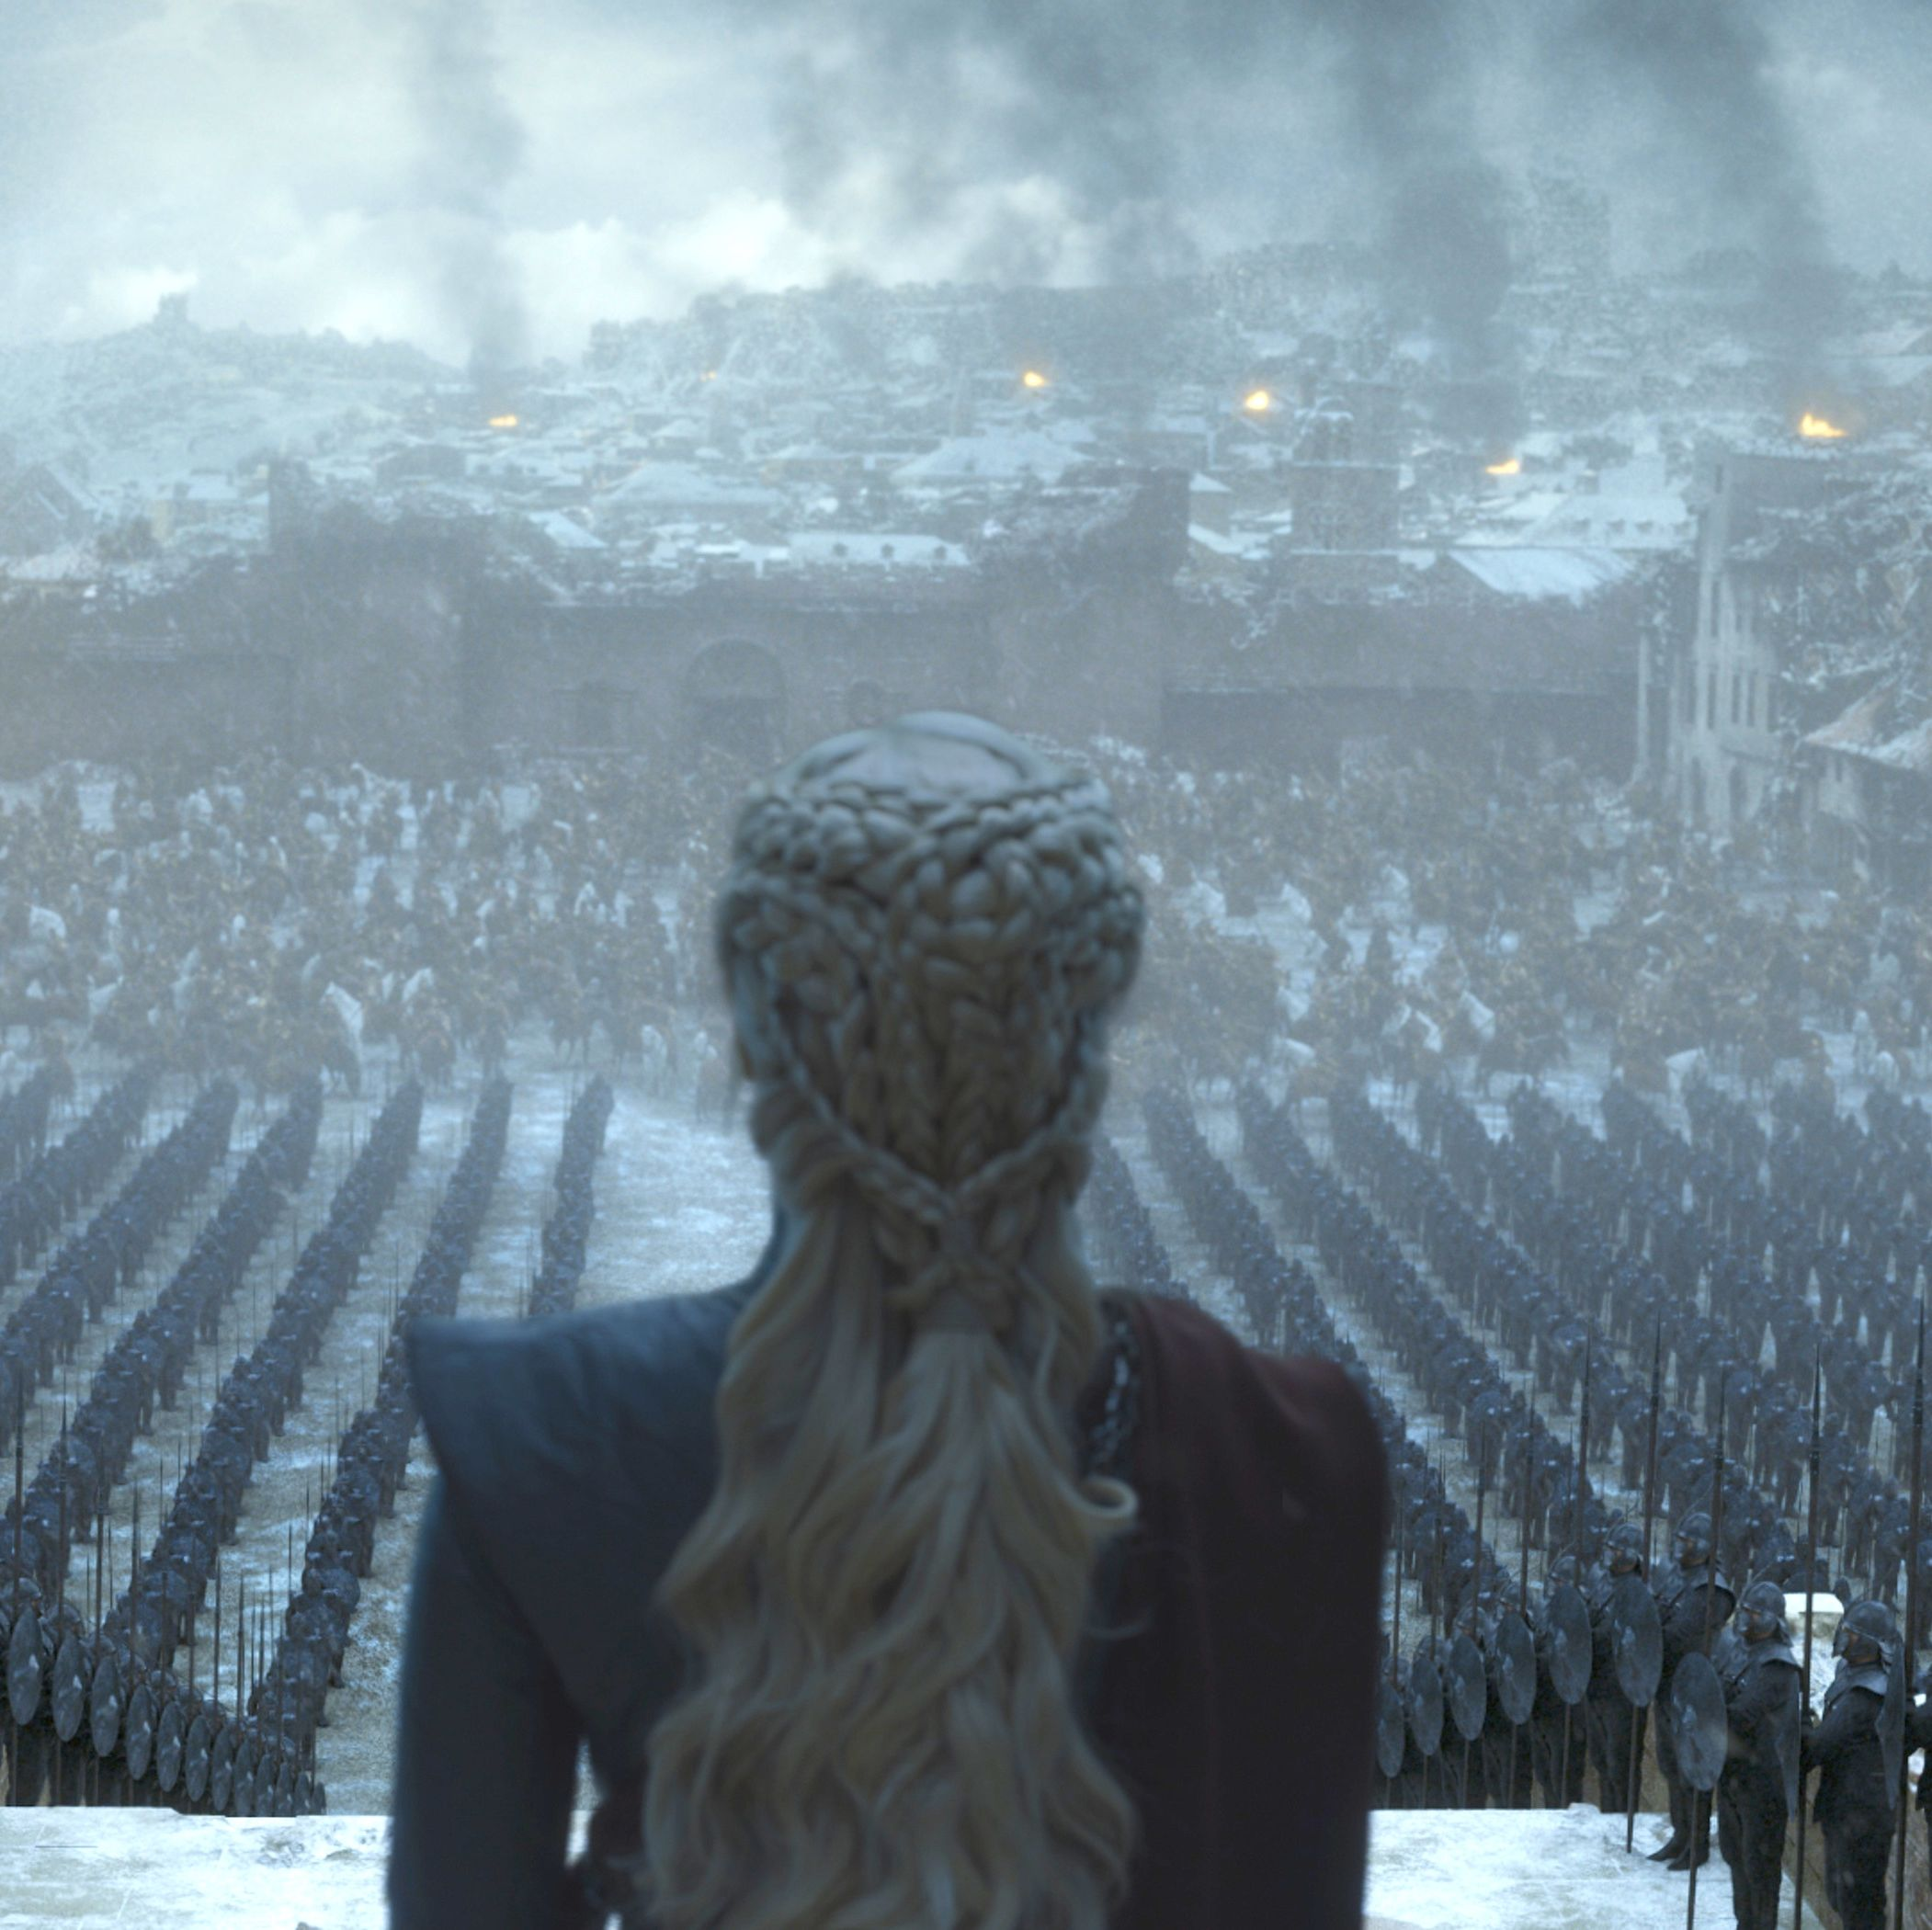 'Game of Thrones' Season Eight Has Been a Disaster. Here's How It Can Redeem Itself in the Finale.